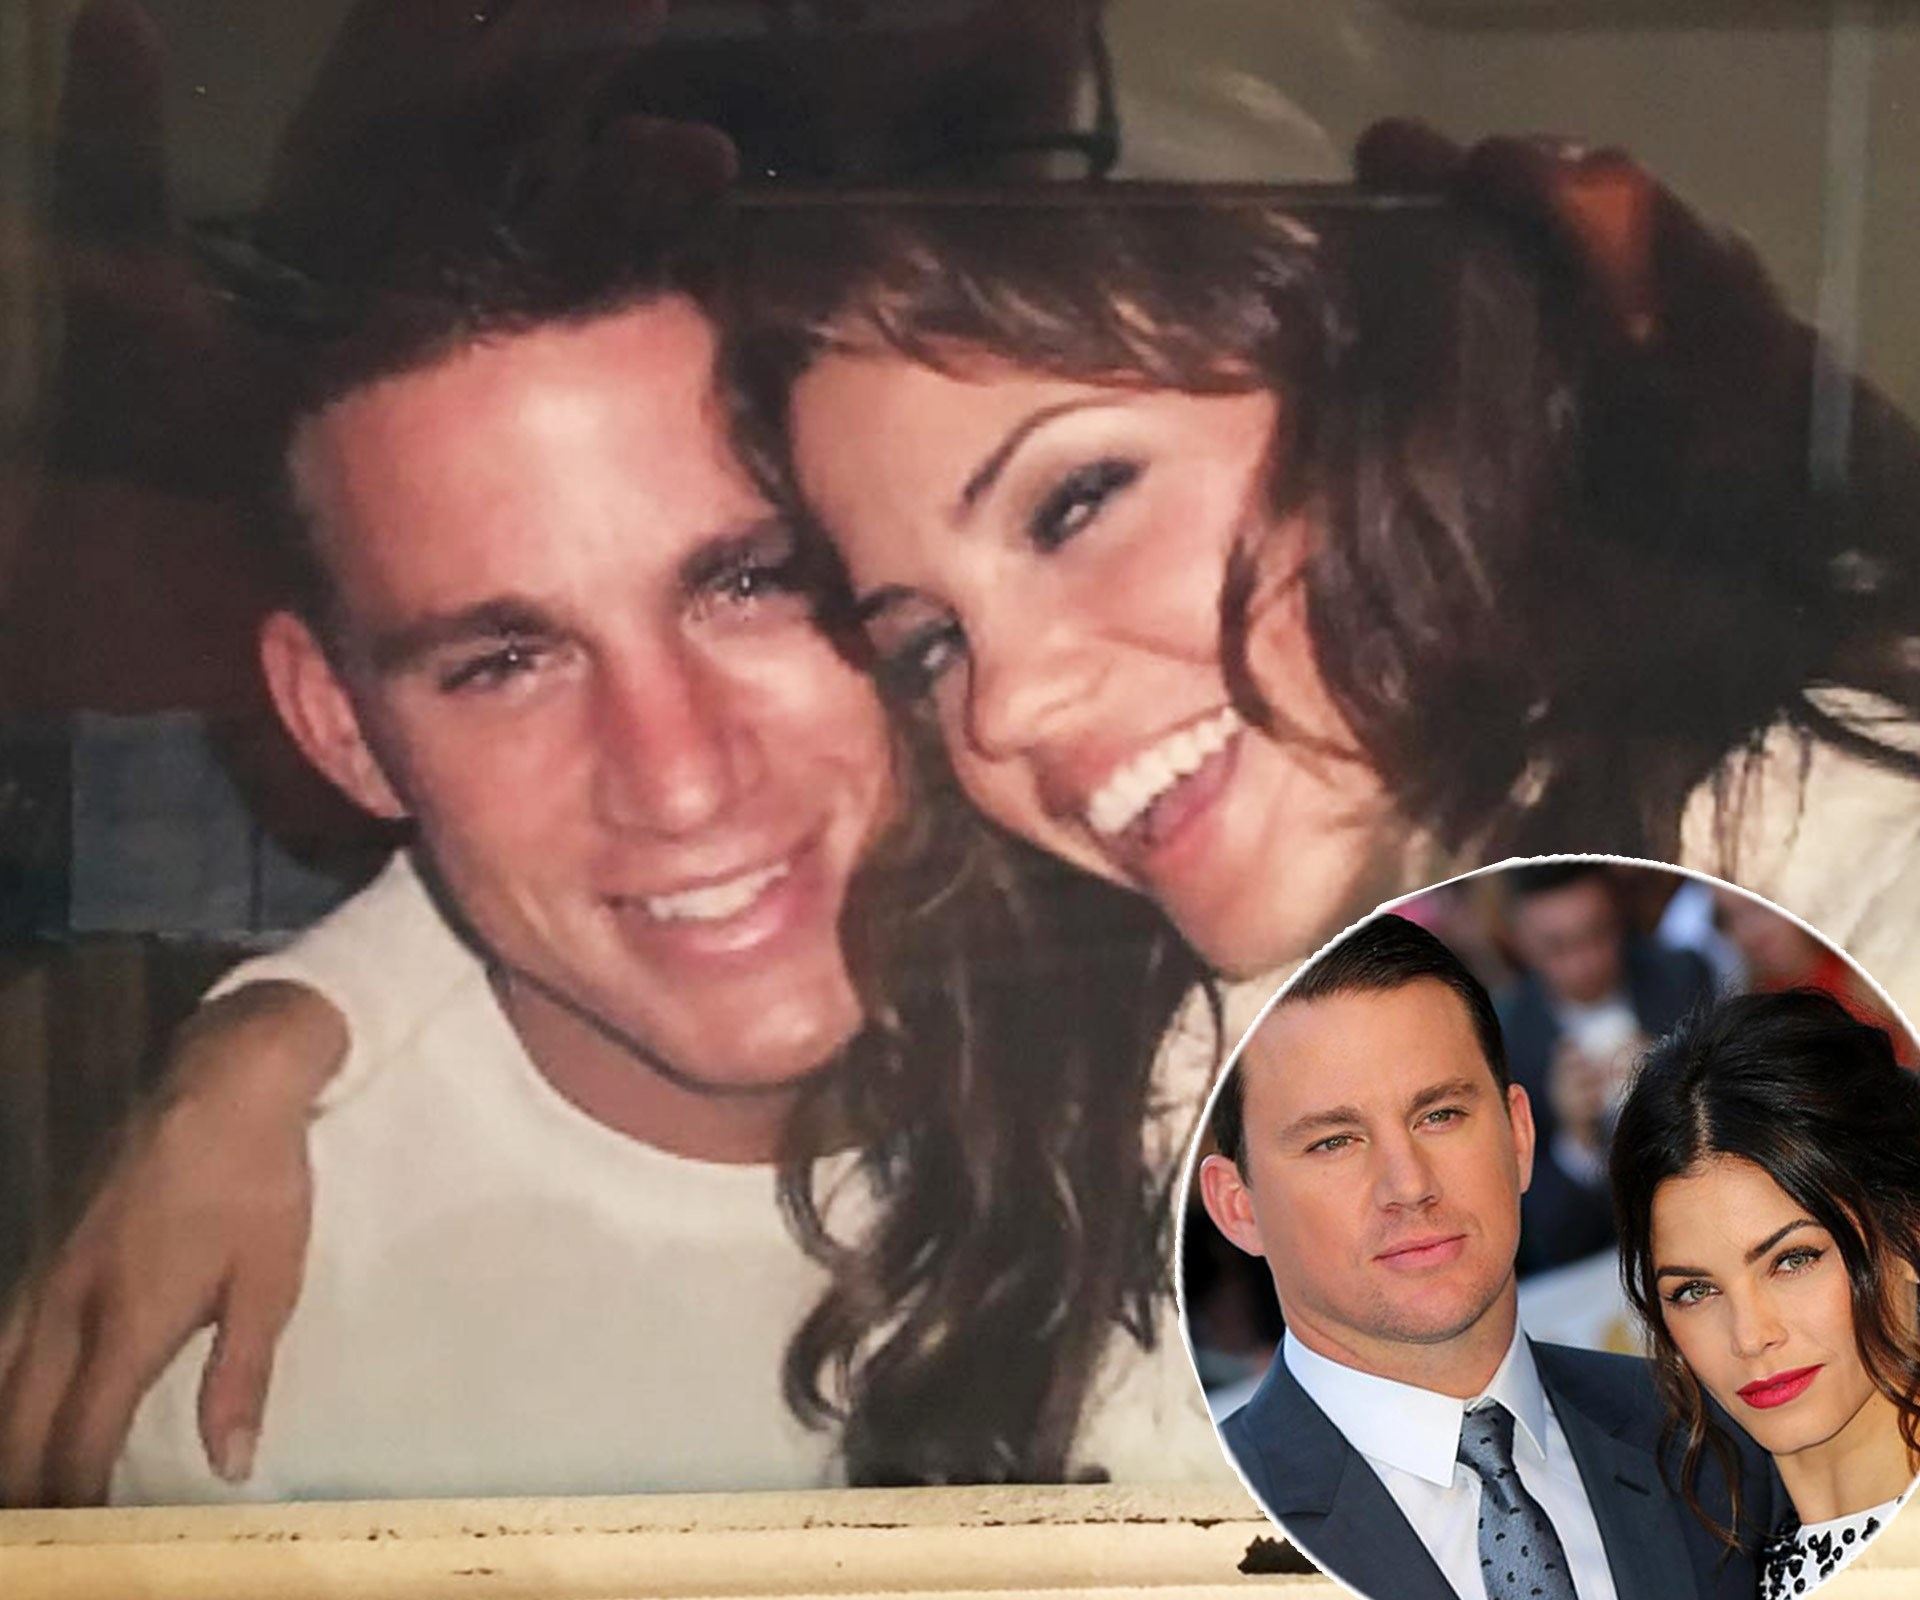 """Jenna Dewan Tatum shared this adorable throwback from the set of *Step Up*, where she and her now-hubby Channing met, a decade ago. """"On set of Step Up. I cannot believe it's the 10 year anniversary of the release today!! Ahhhh where does the time go?? Love you all and thanks for all the love all these years,"""" she captioned. **Watch Channing and Jenna re-enact the Step Up dance 10 years later in the next slide!**"""